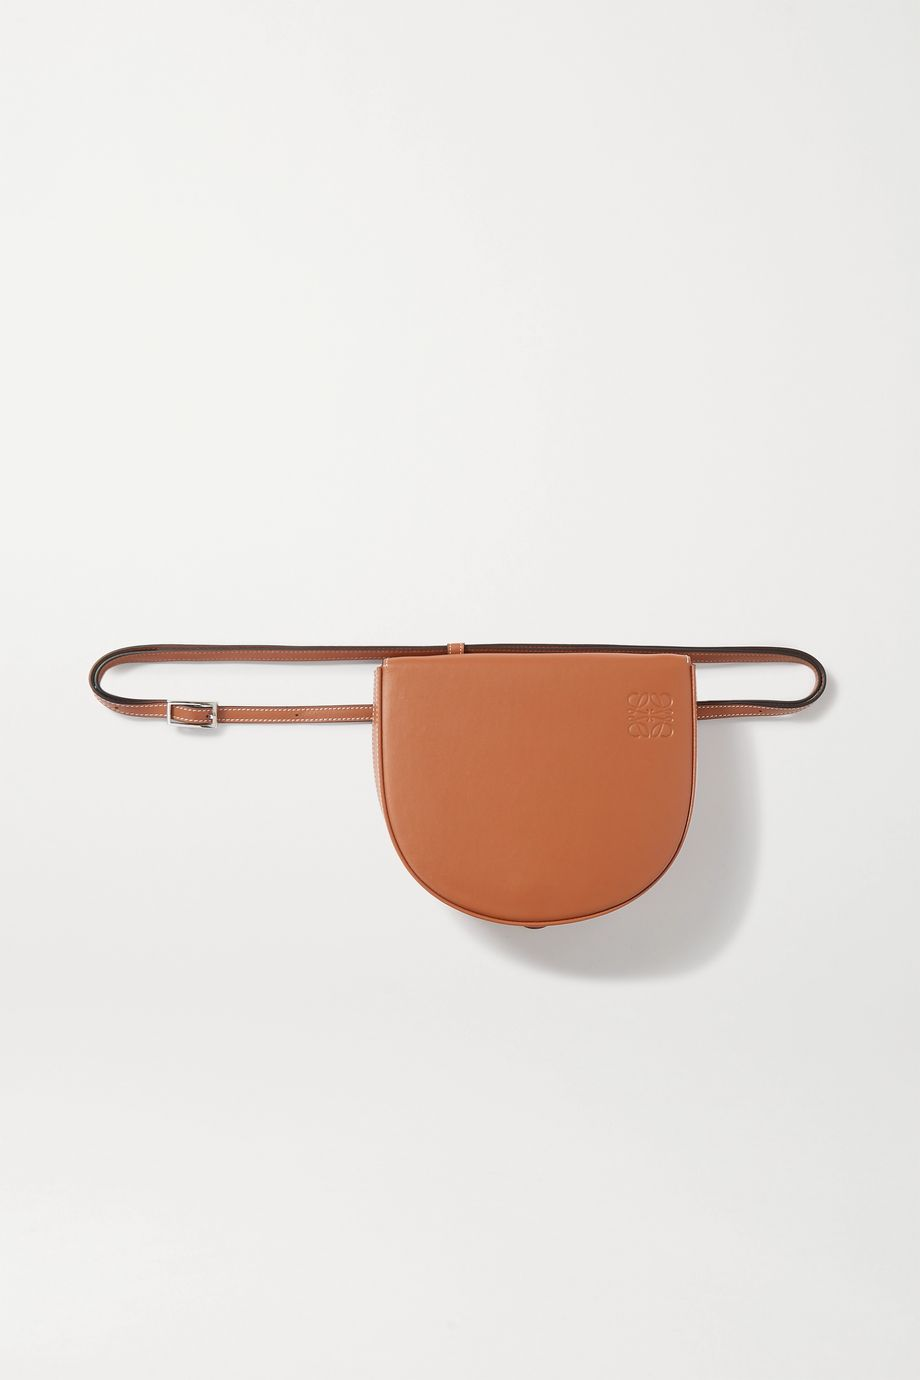 Loewe Heel leather belt bag